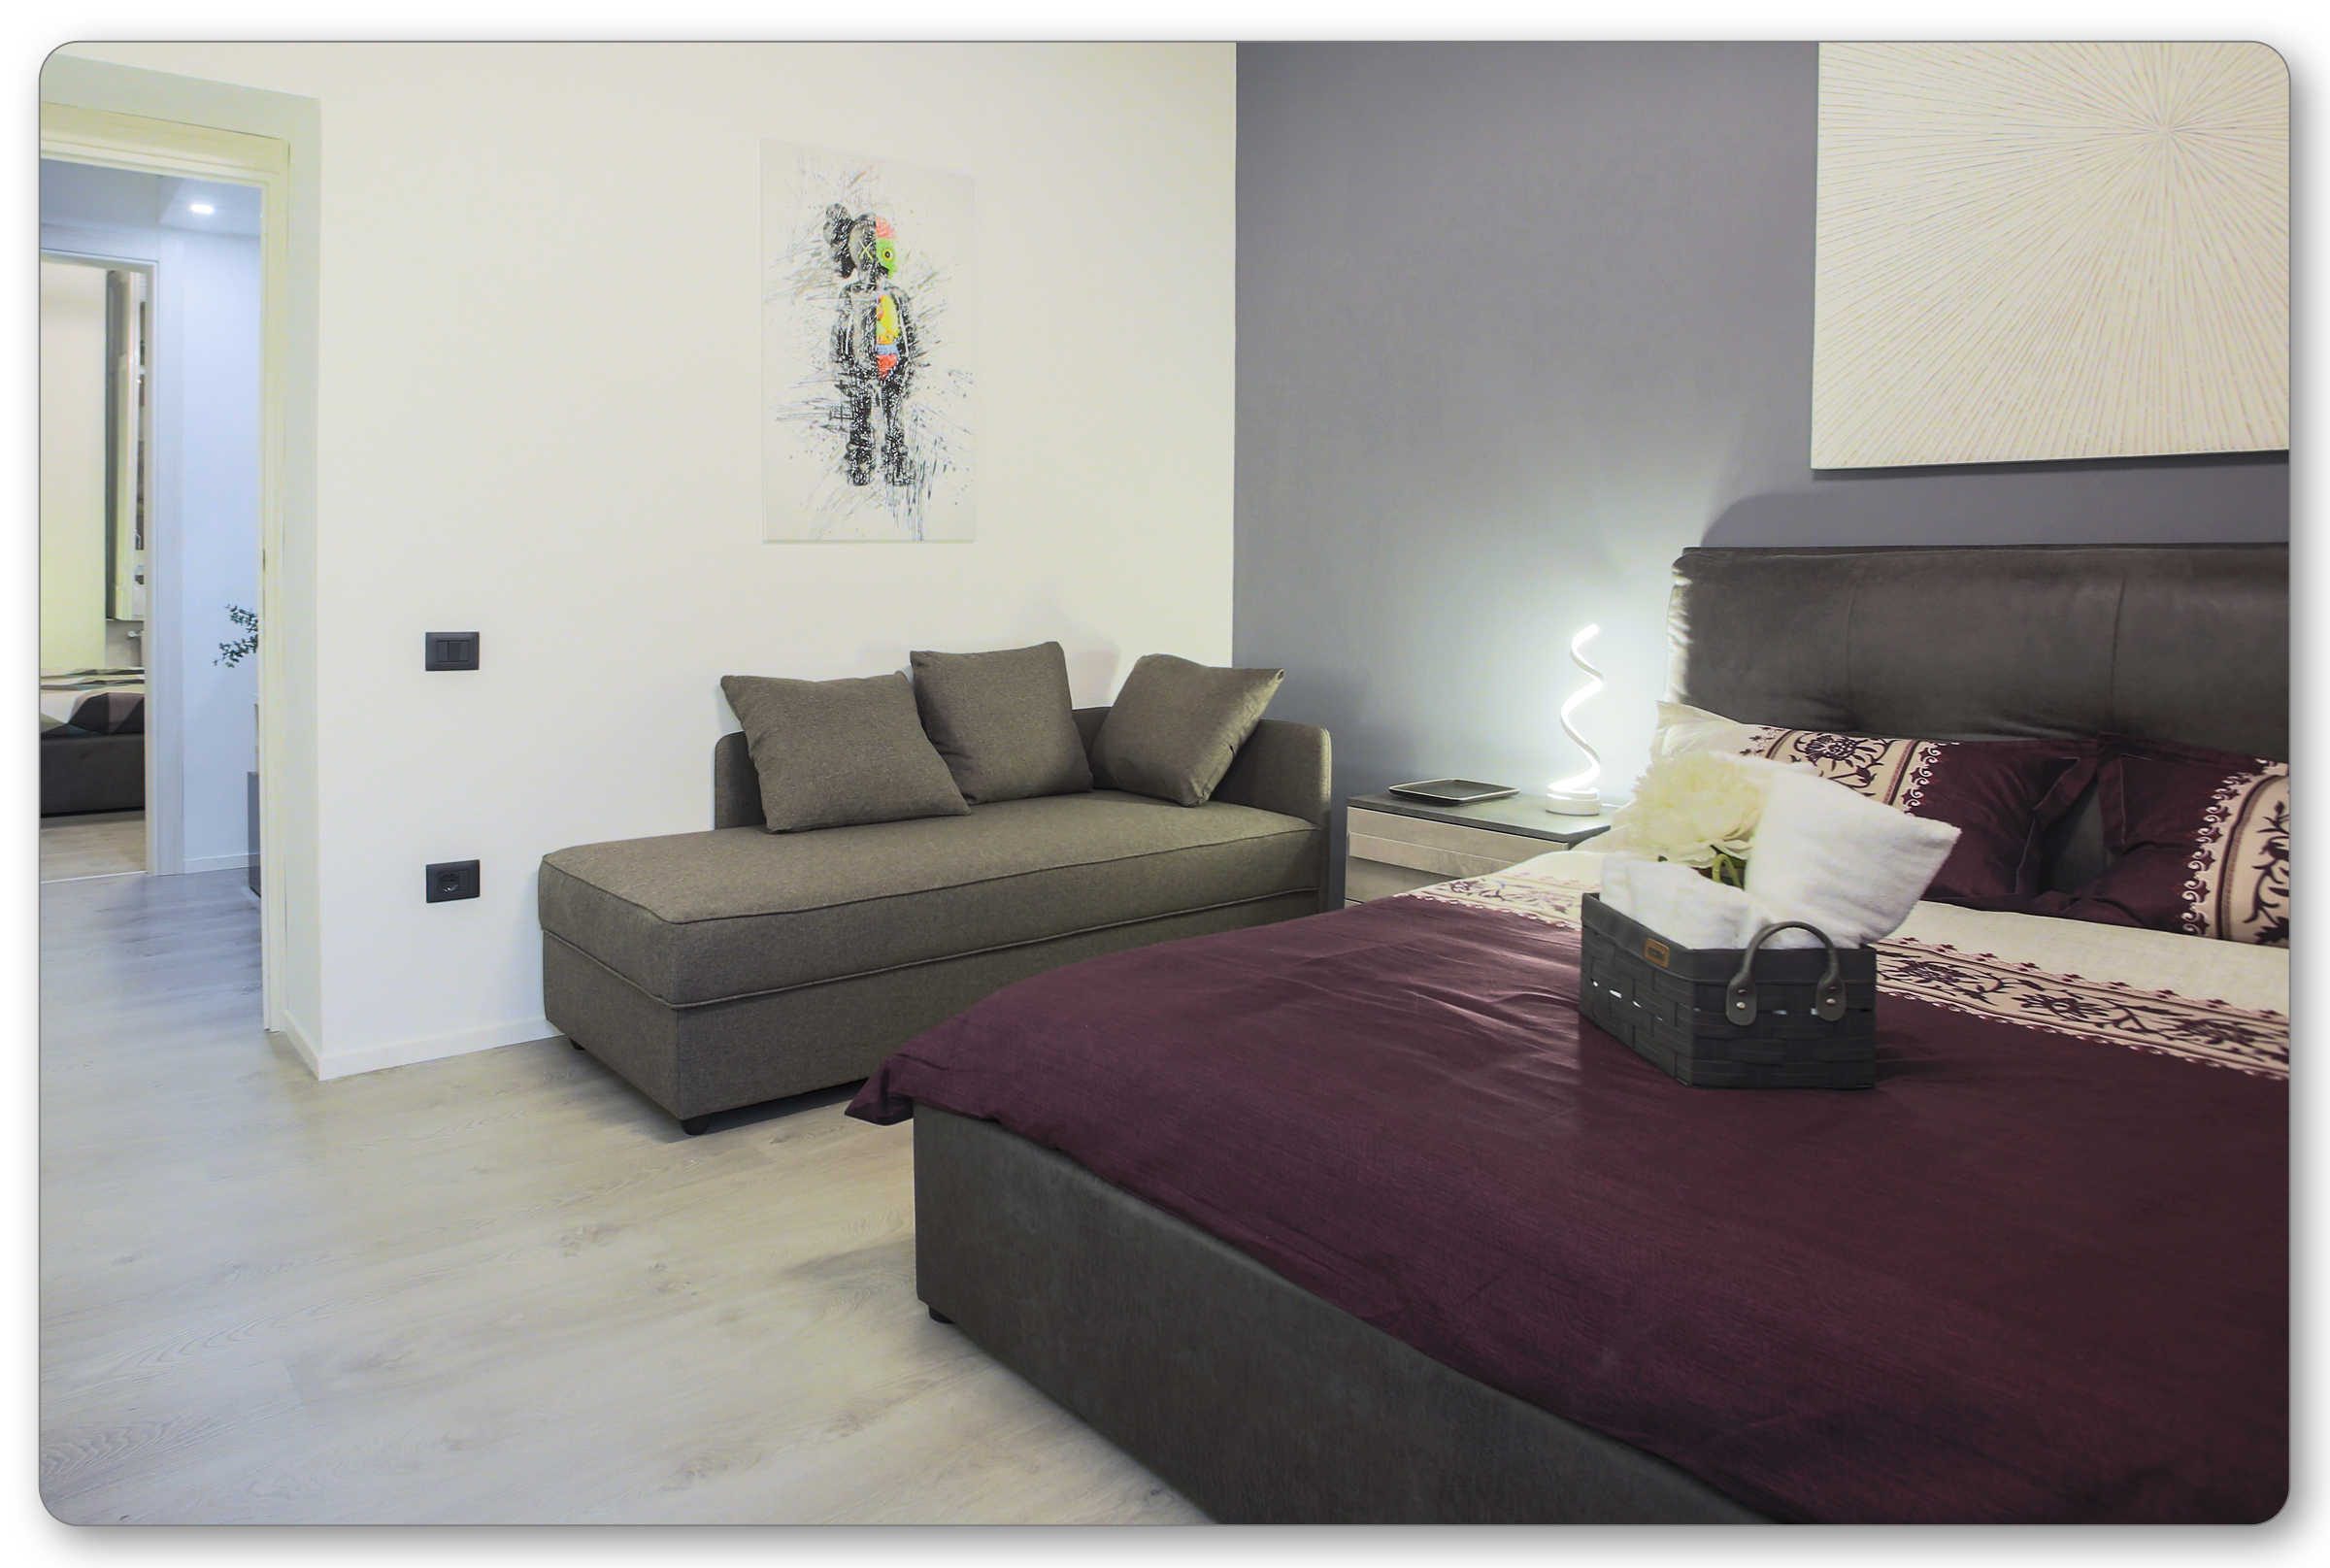 Double / Triple with private bathroom in Cava de' Tirreni